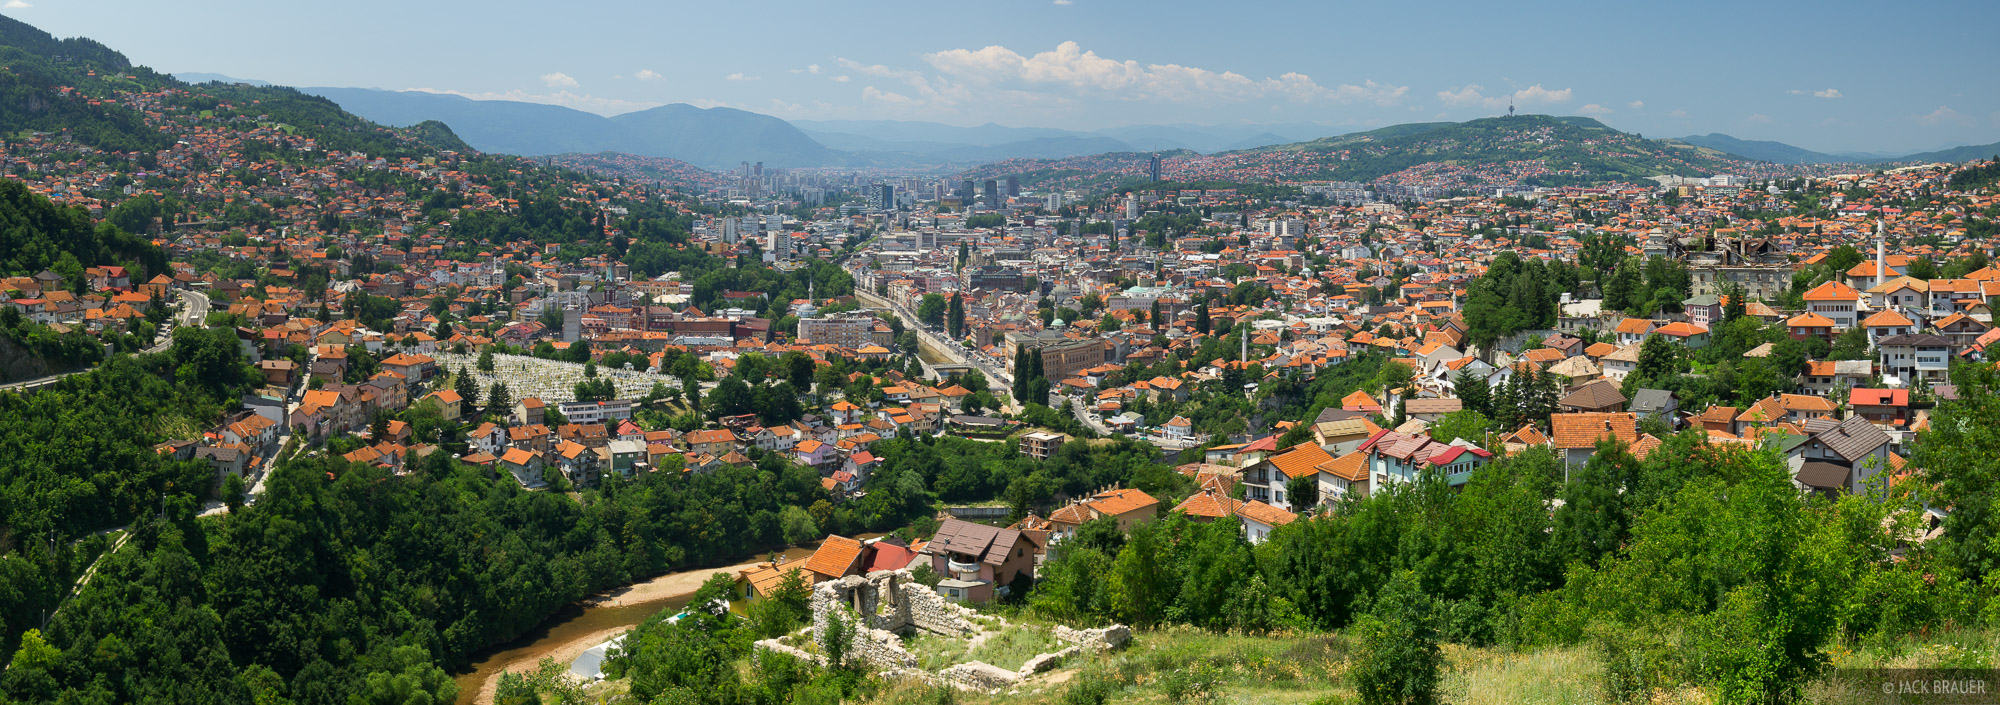 The beautiful city of Sarajevo sits in a verdant valley between rolling hills. Downtown in down in the center.